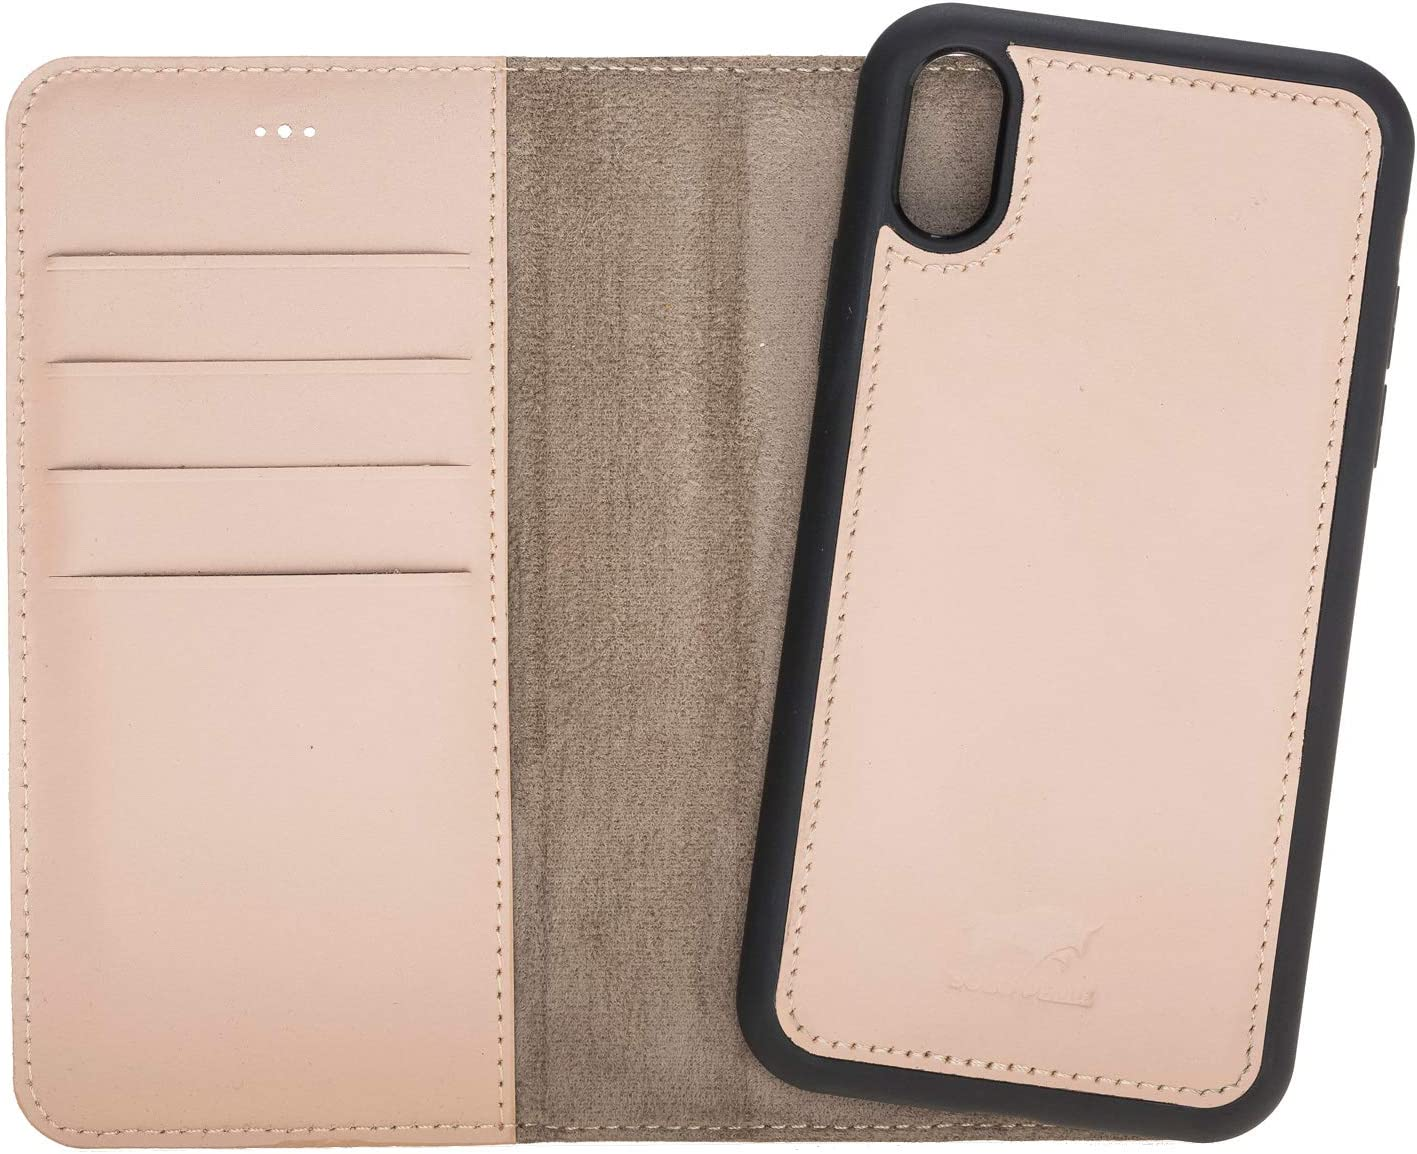 Solo Pelle leather case Harvard iPhone Apple We OFFer at cheap prices compatible the for Cheap SALE Start